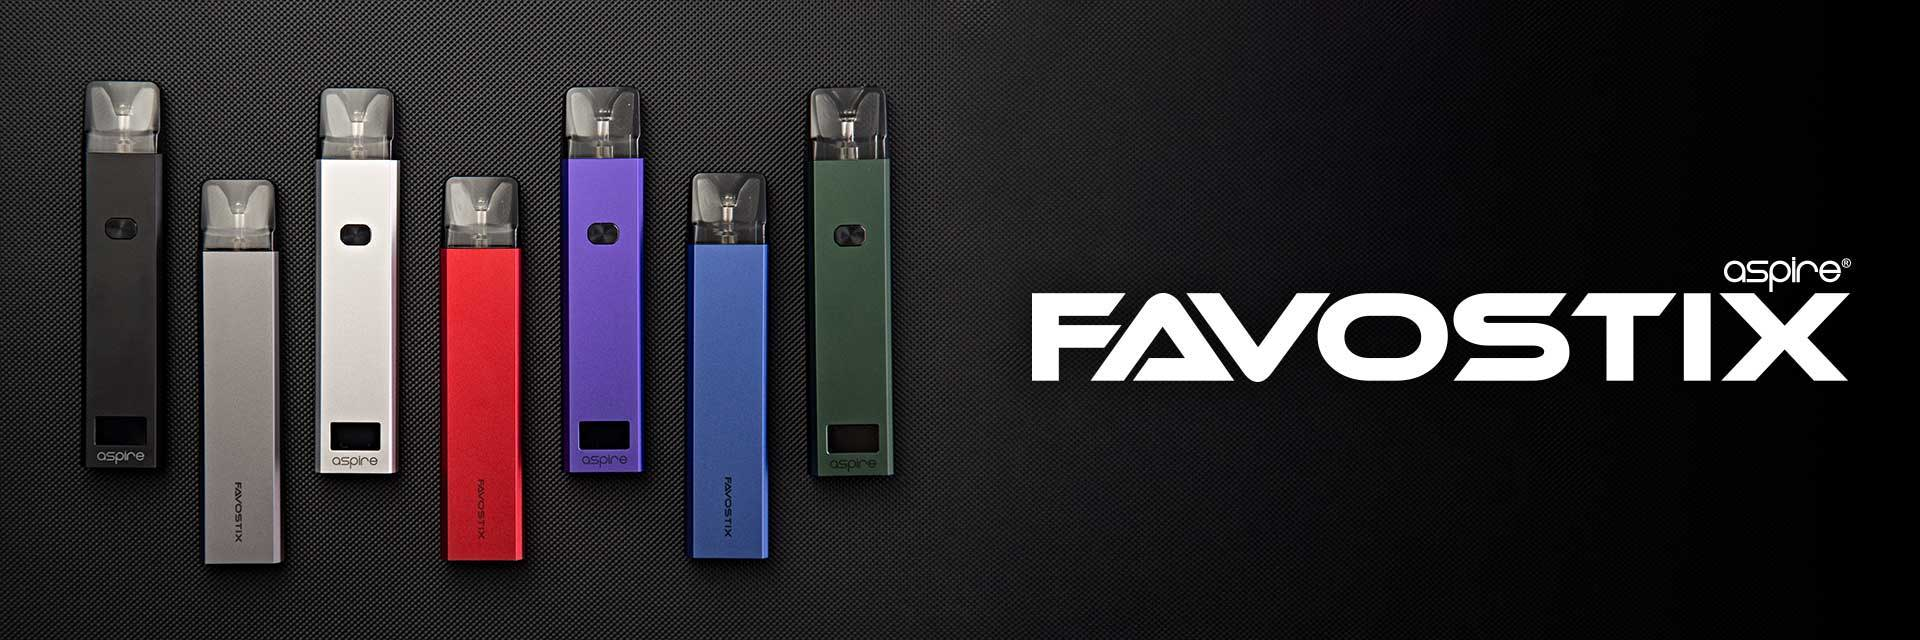 Constructed of aluminum alloy oxidation, combining a elegant, slender design with innovative branding and new coil technology, the Aspire Favostix pod has arrived. It comes to offer a superior flavor and aims to let you experience the colorful, flavourful powerful vaping.